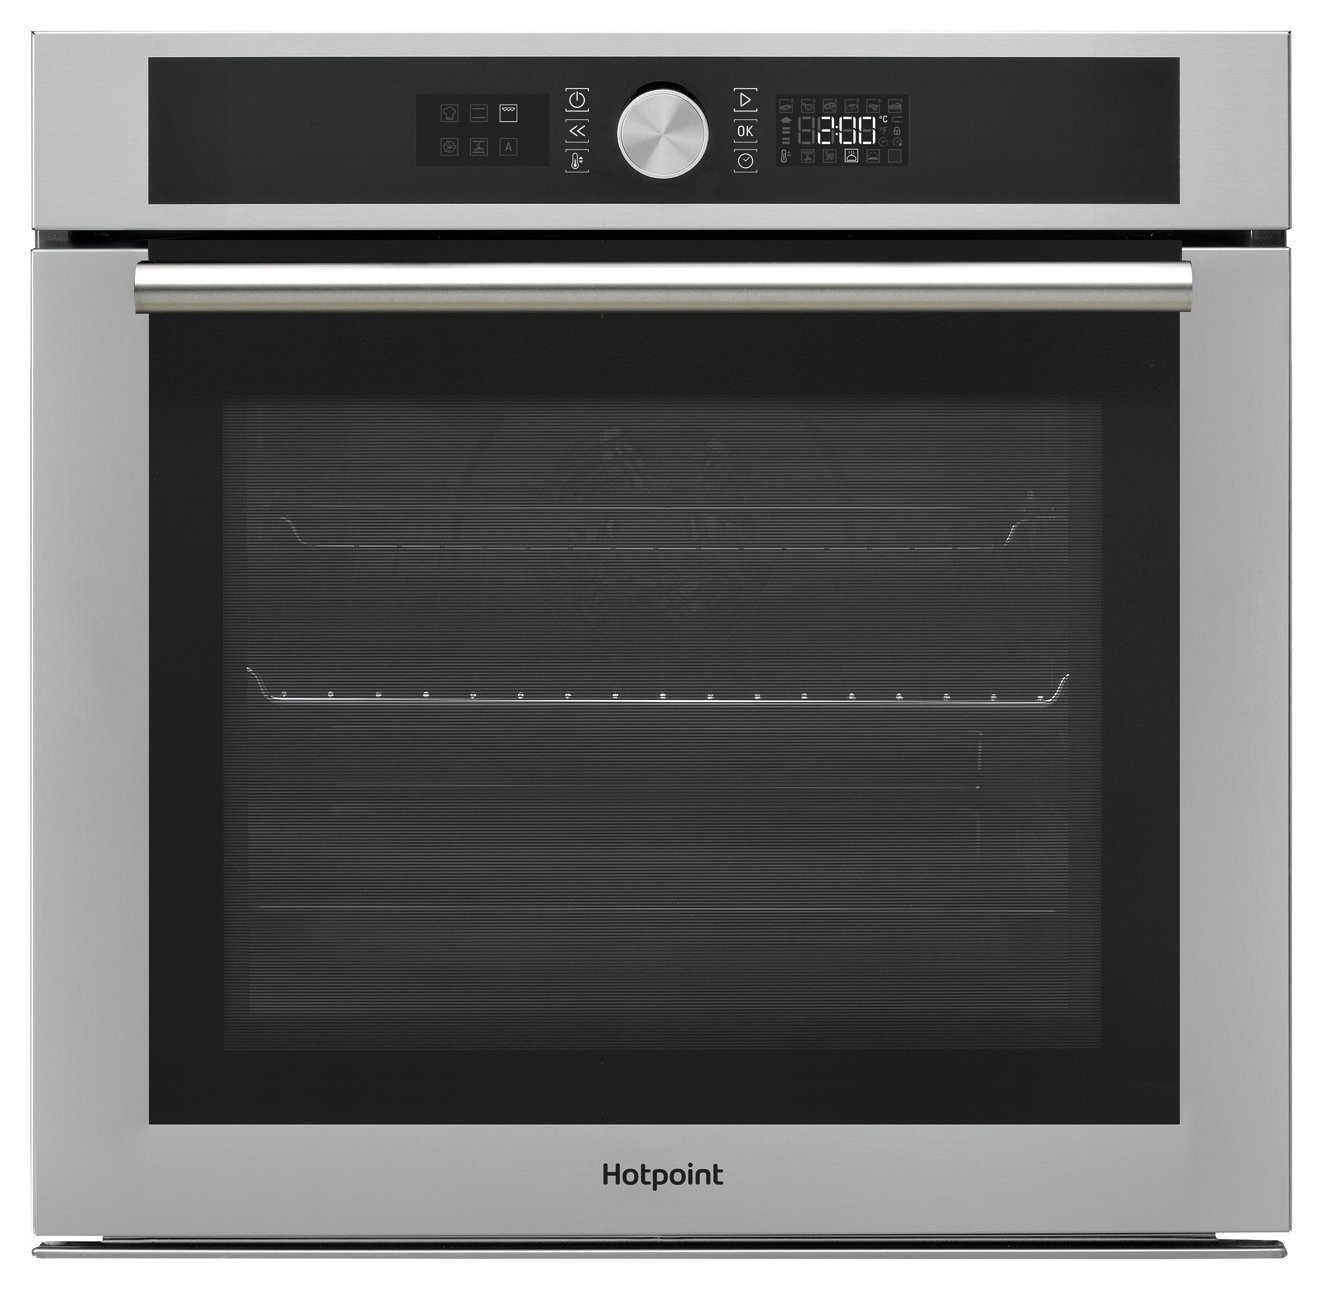 Hotpoint SI4854PIX Electric Built-In Oven - Stainless Steel from Hotpoint